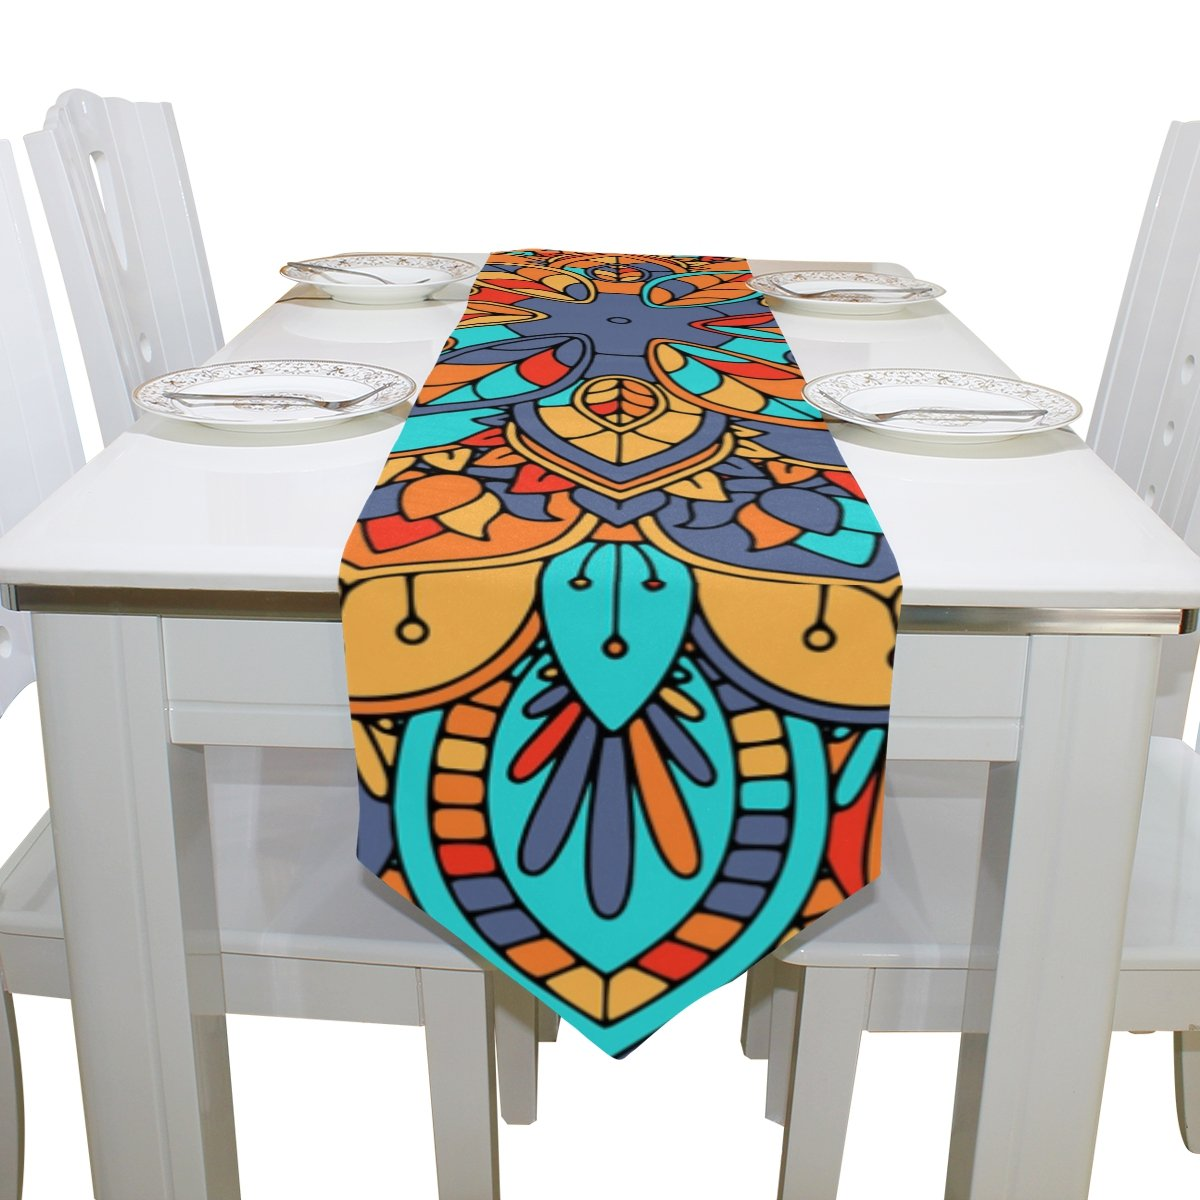 Blue Viper Abstract Mandala Design Table Runner Home Décor for Weddings, Dinners, Parties, or Summer BBQ Double-Sided Printing 13x70 Inches by Hokkien